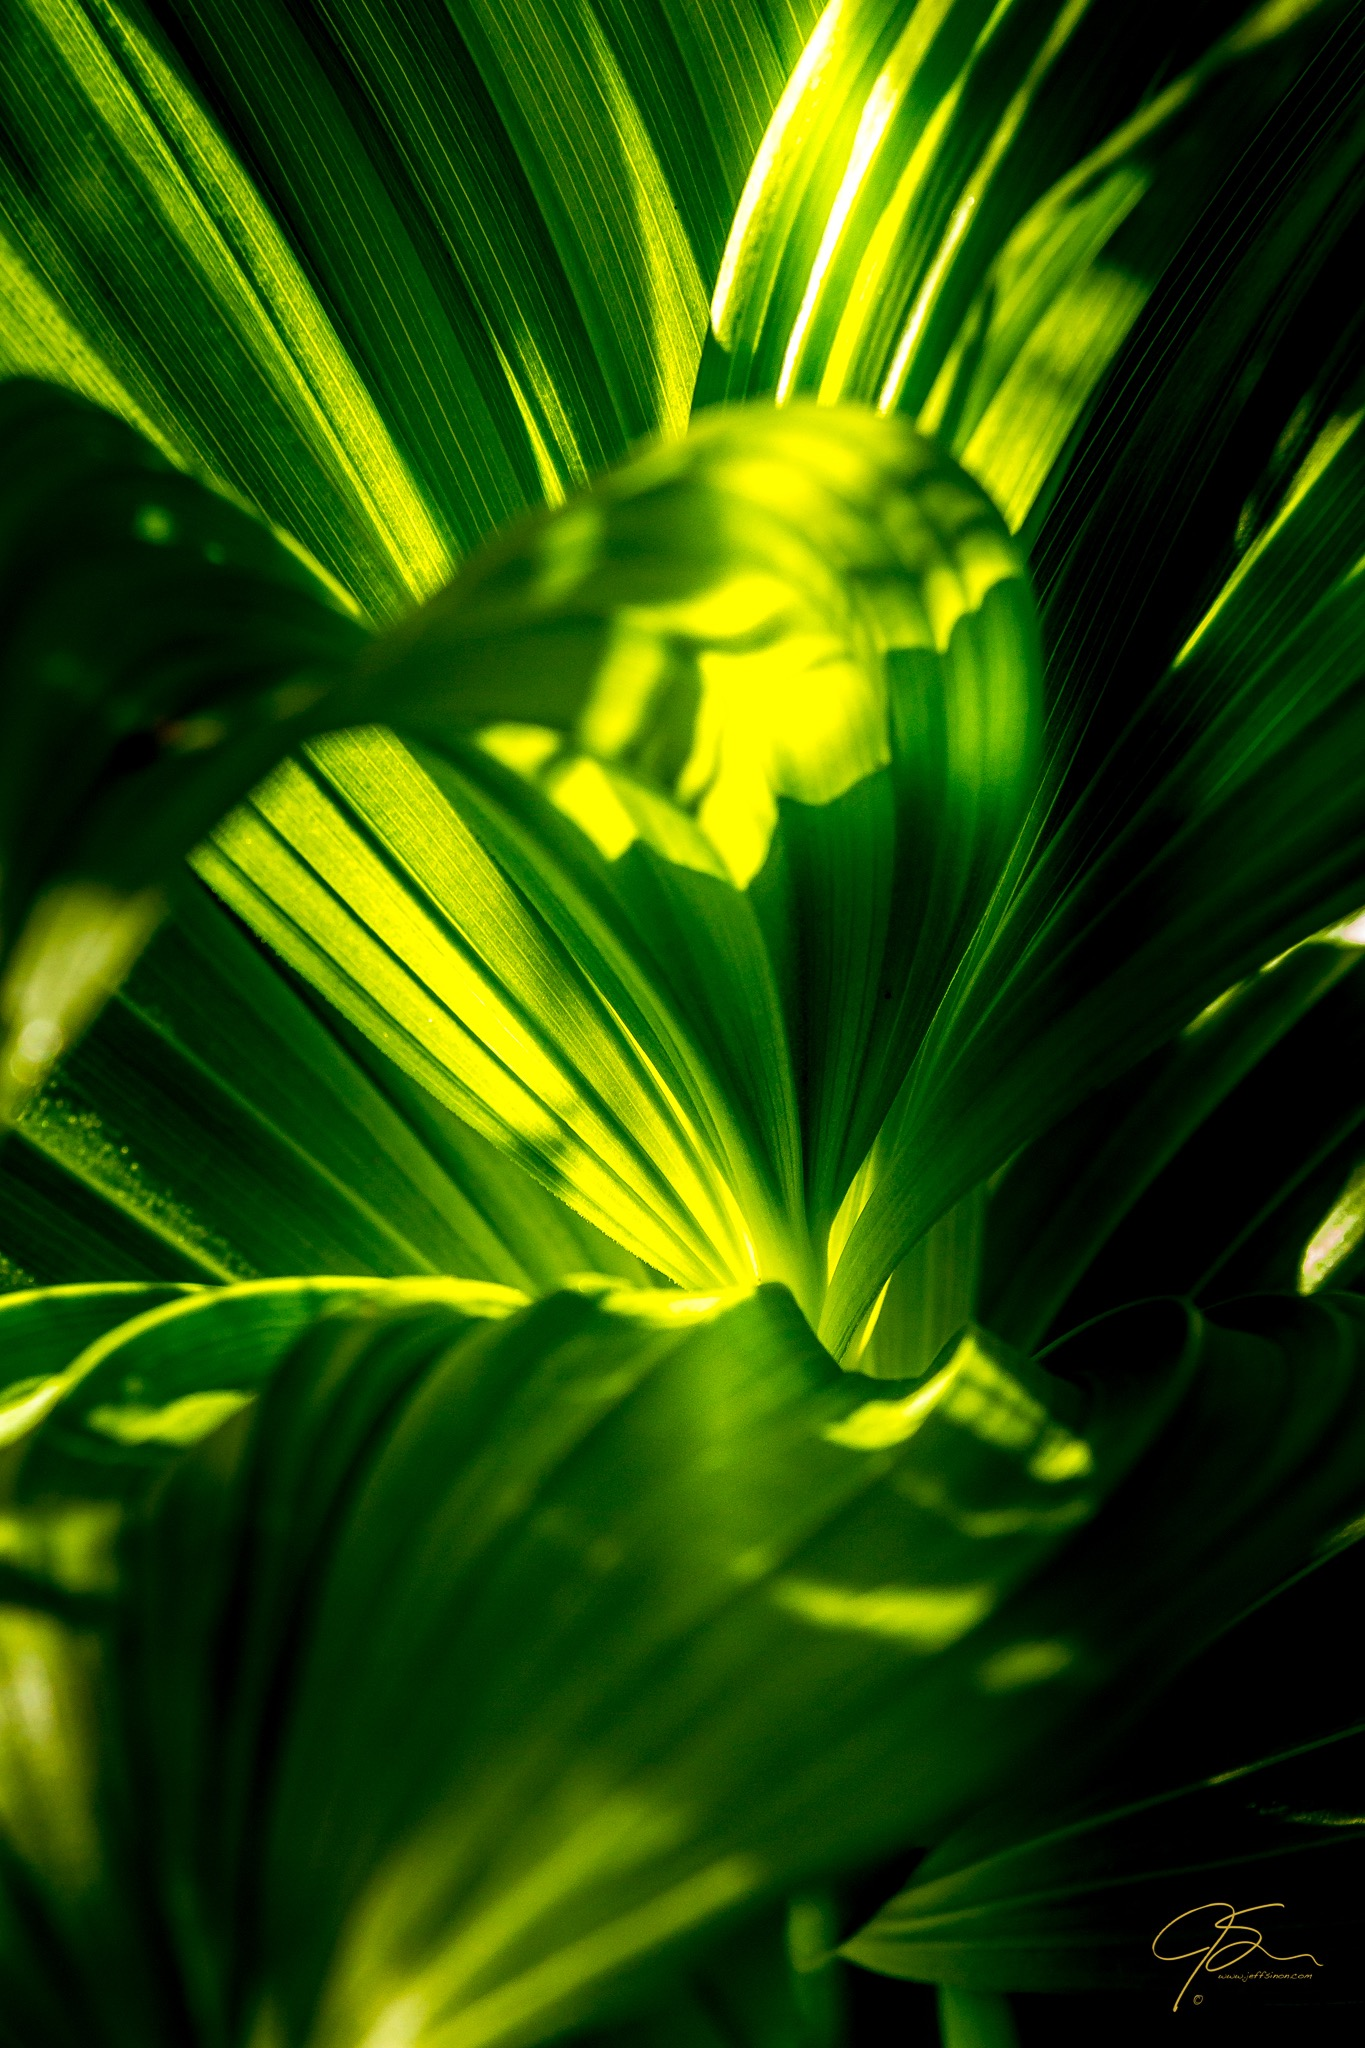 vibrant green and wonderfully textured leaves of the false hellebore plant, backlit by the early morning sunlight.